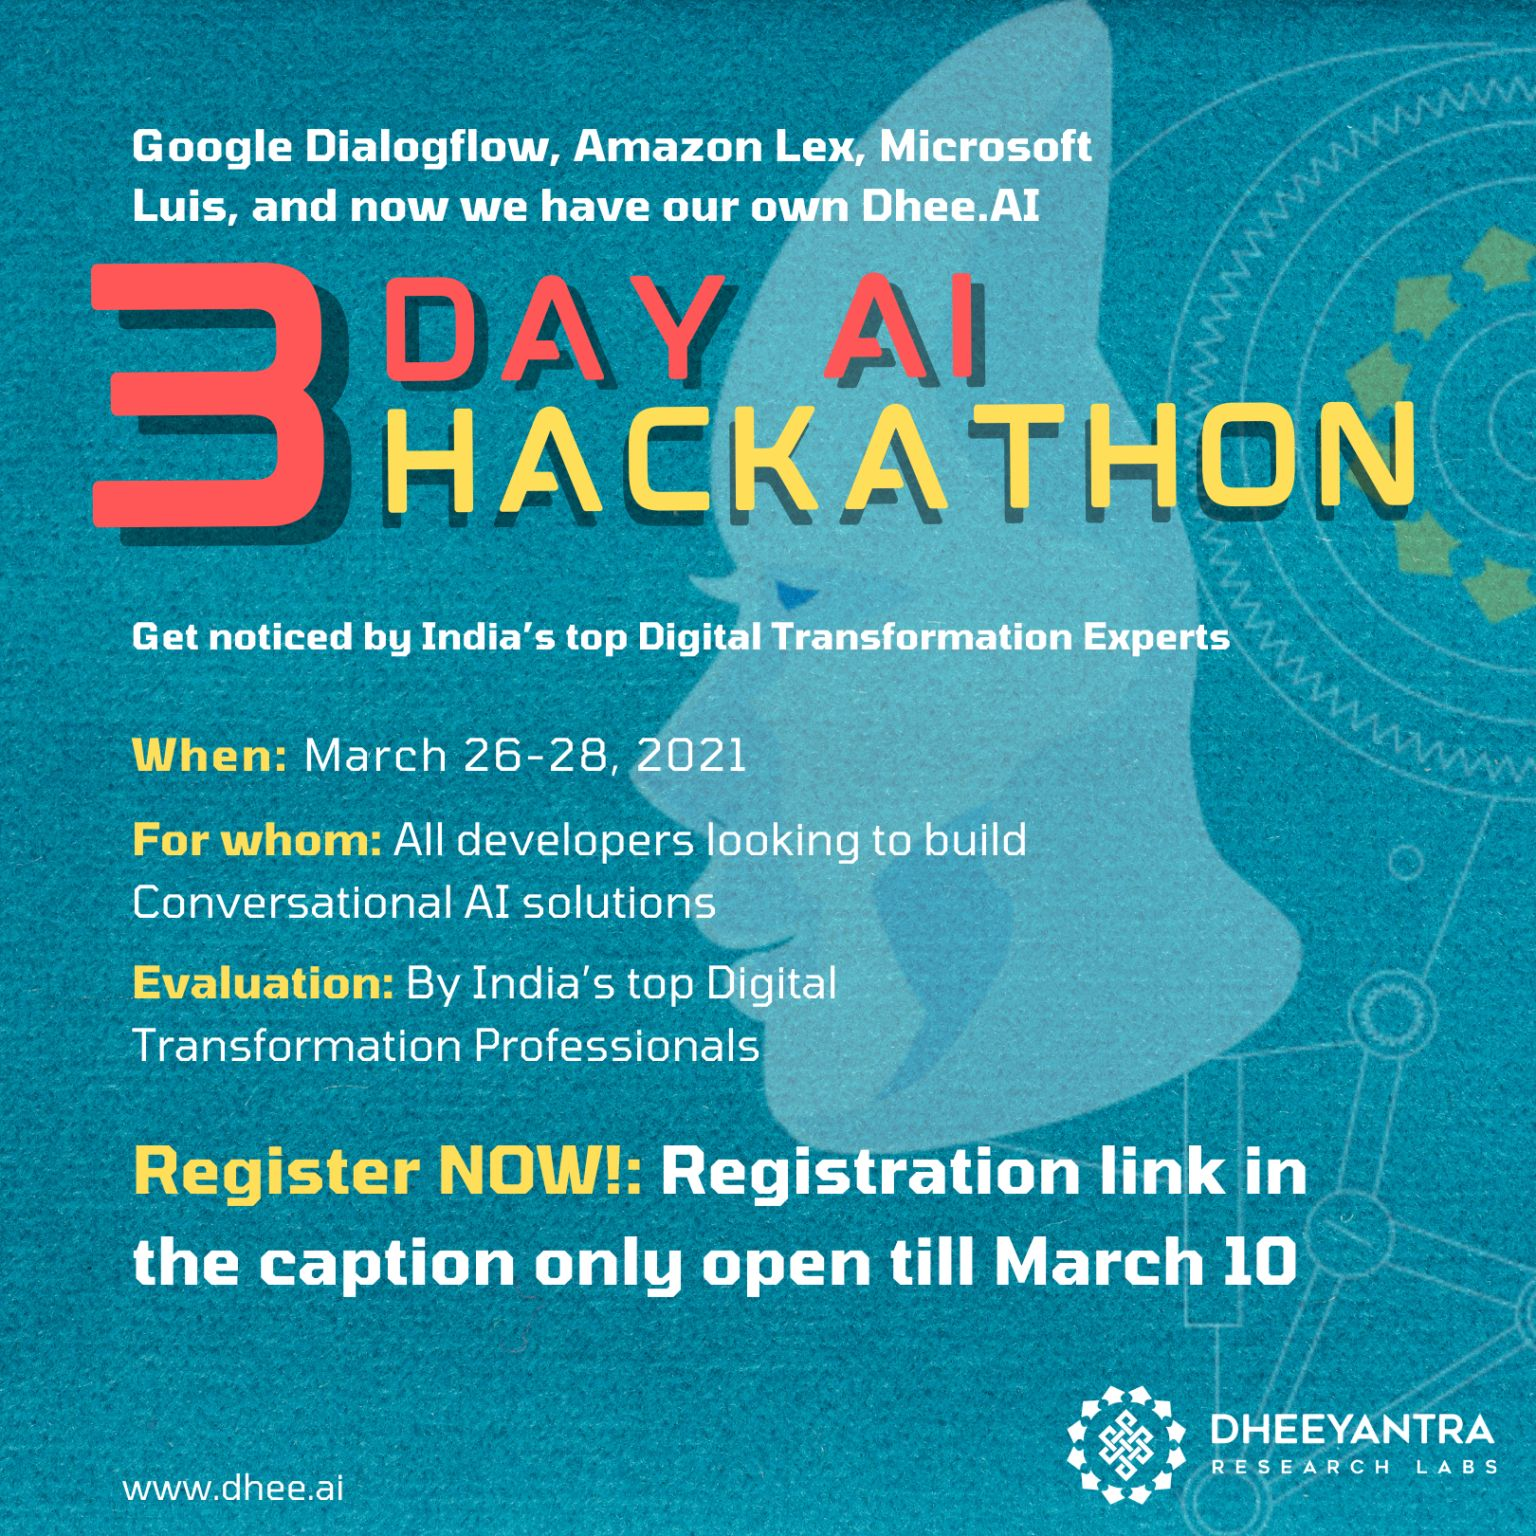 Register Now For Dheehackathon